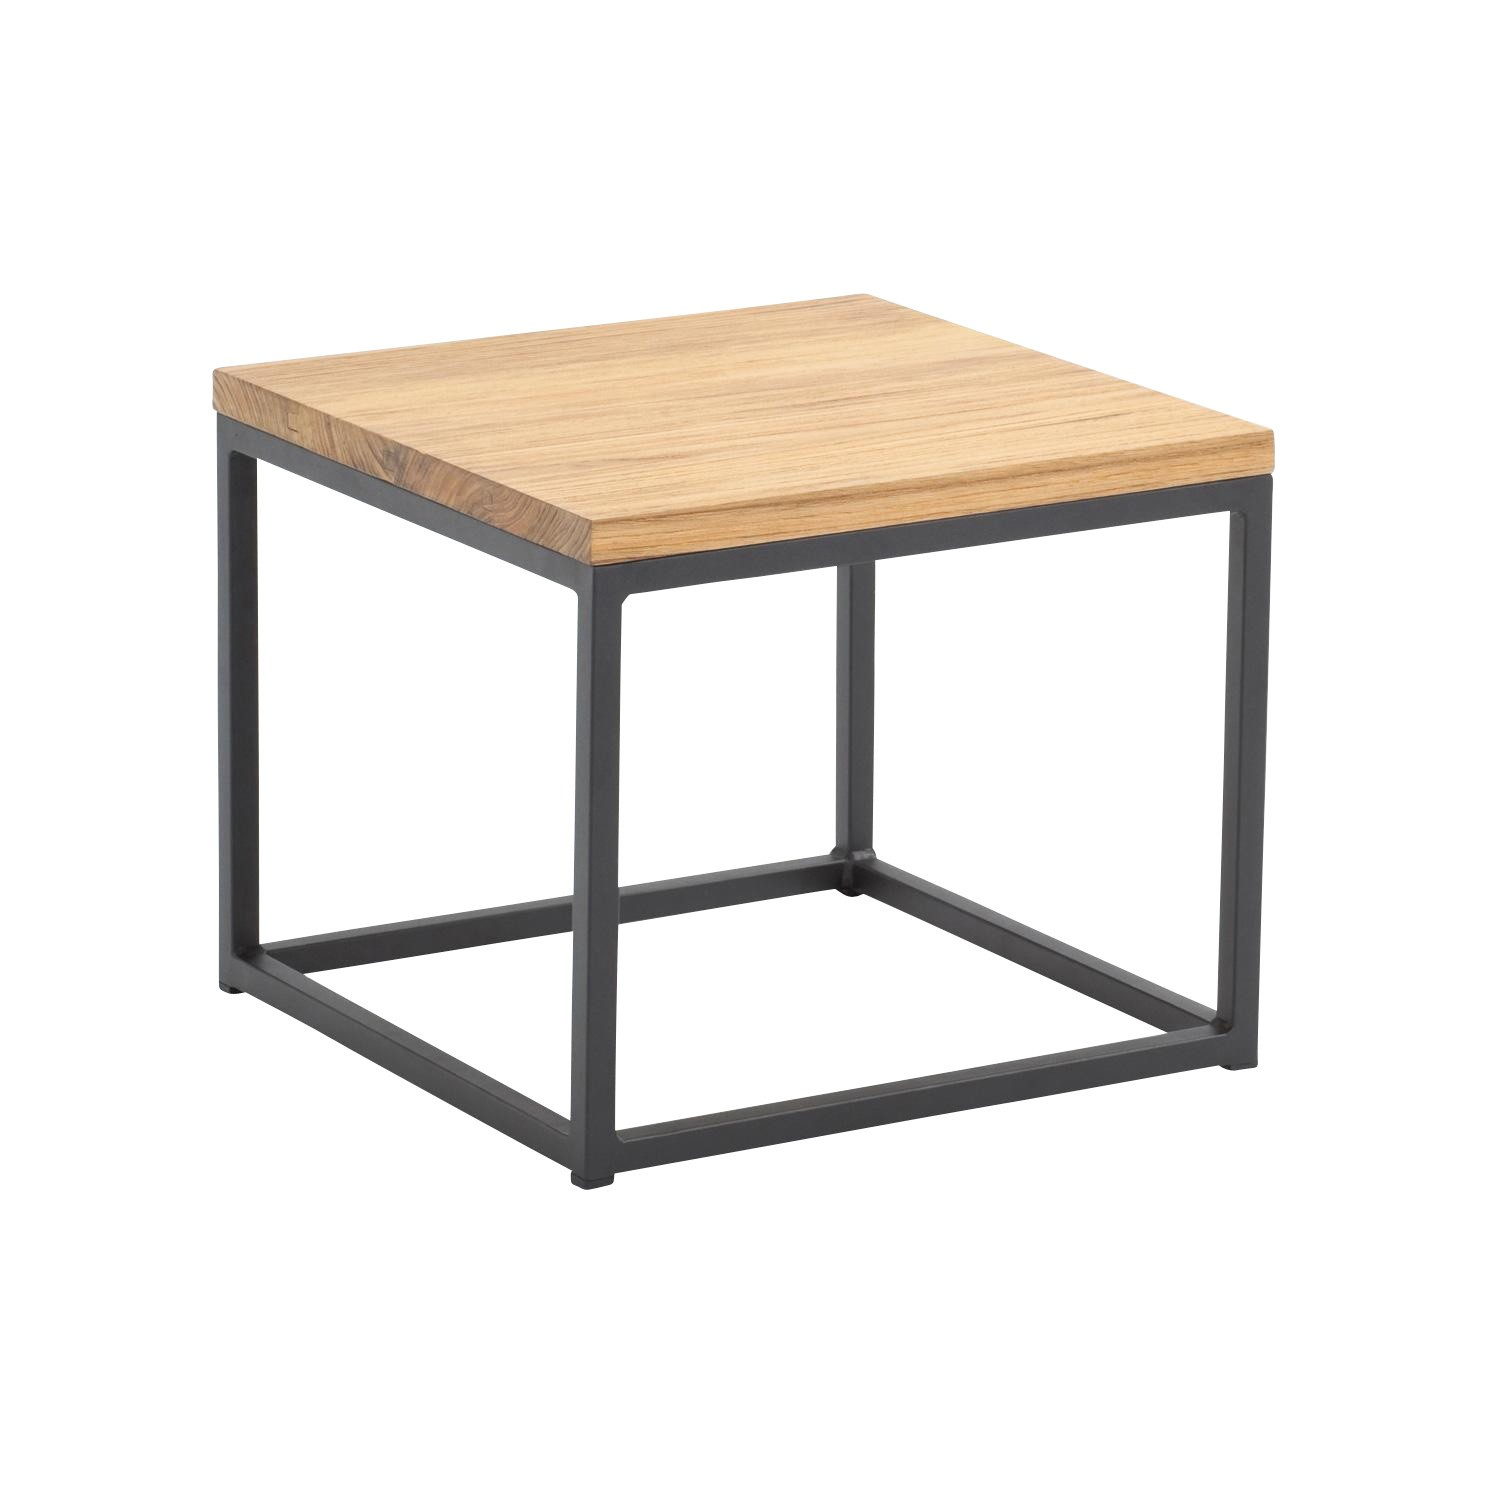 kettal landscape side table teak ambientedirect beistelltisch outdoor black top modern furniture toronto drinks cooler home goods entryway bench fold out trestle tablecloth deep